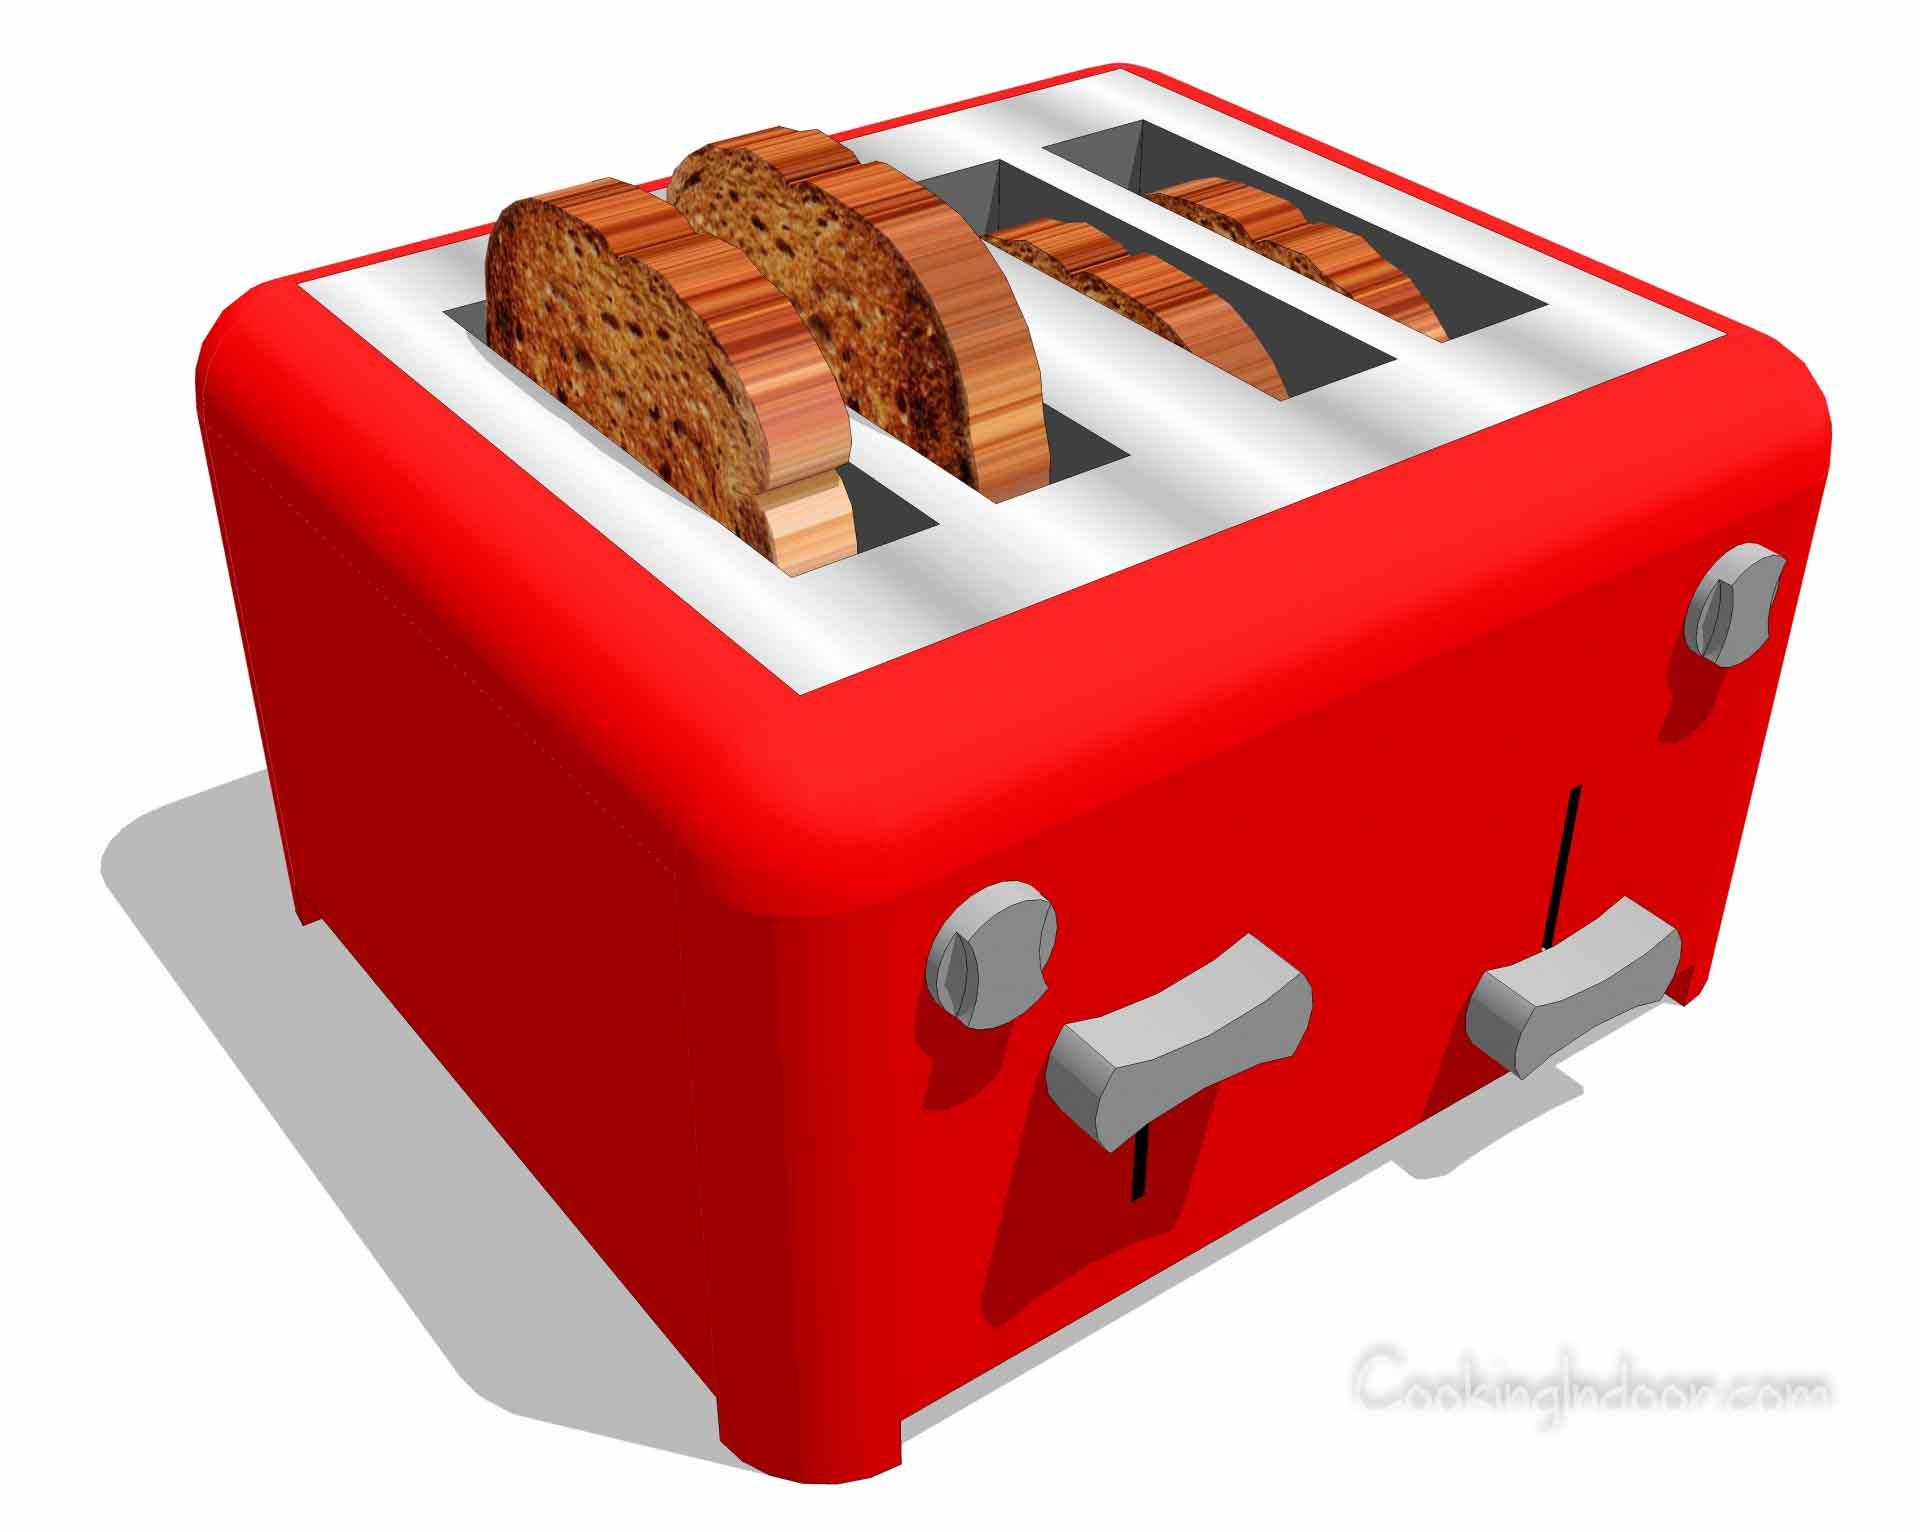 Toaster definition